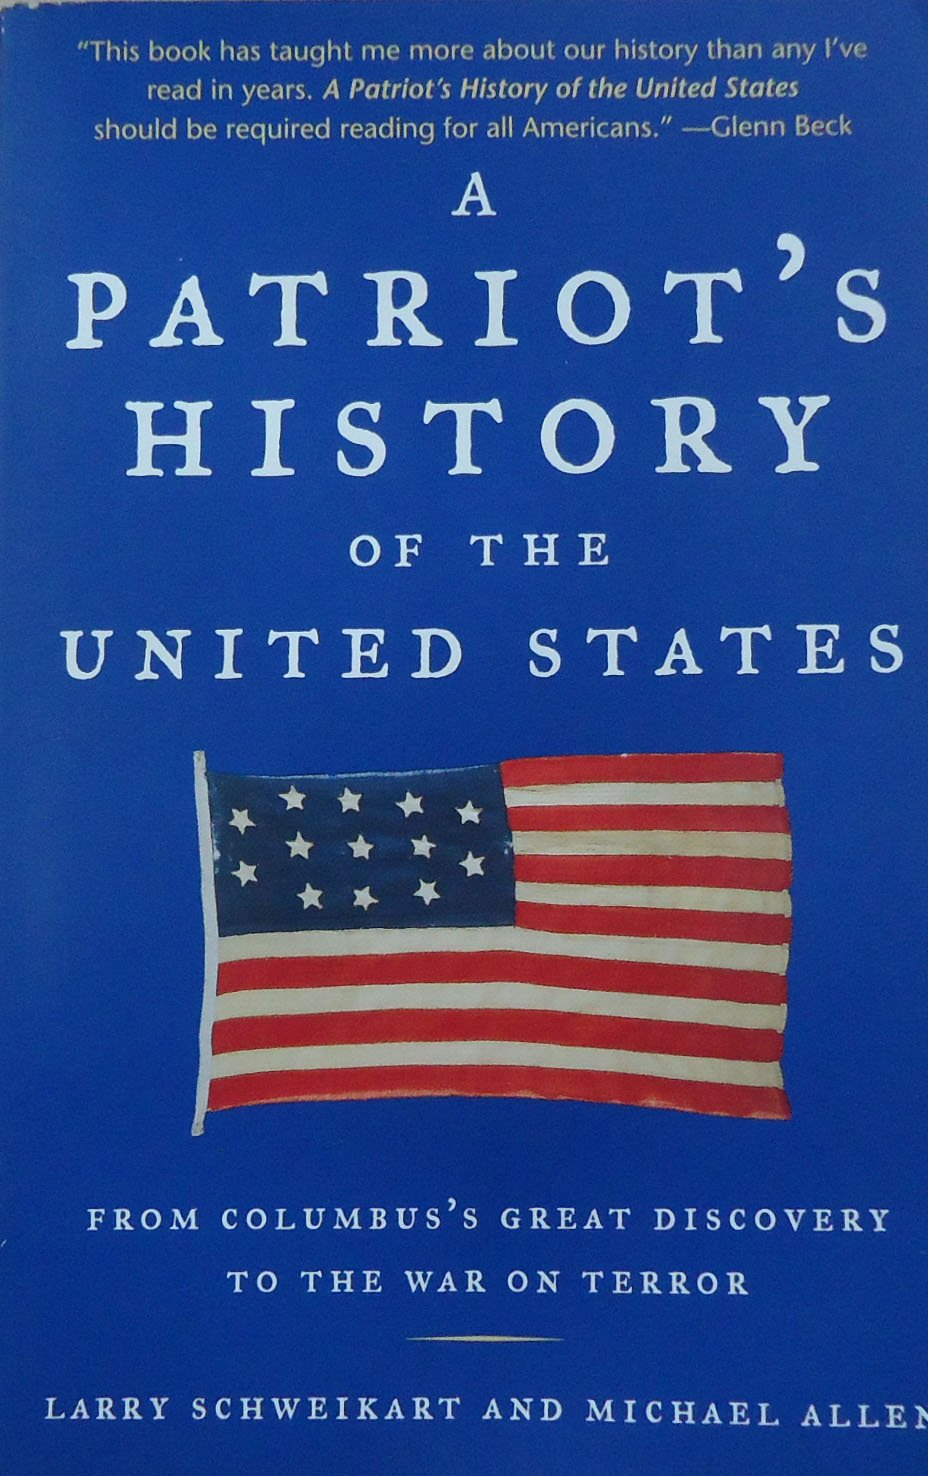 A Patriot's History of the United States: From Columbus's Great Discovery to the War on Terror: Larry Schweikart, Michael Allen: 9781595230324: Amazon.com: ...